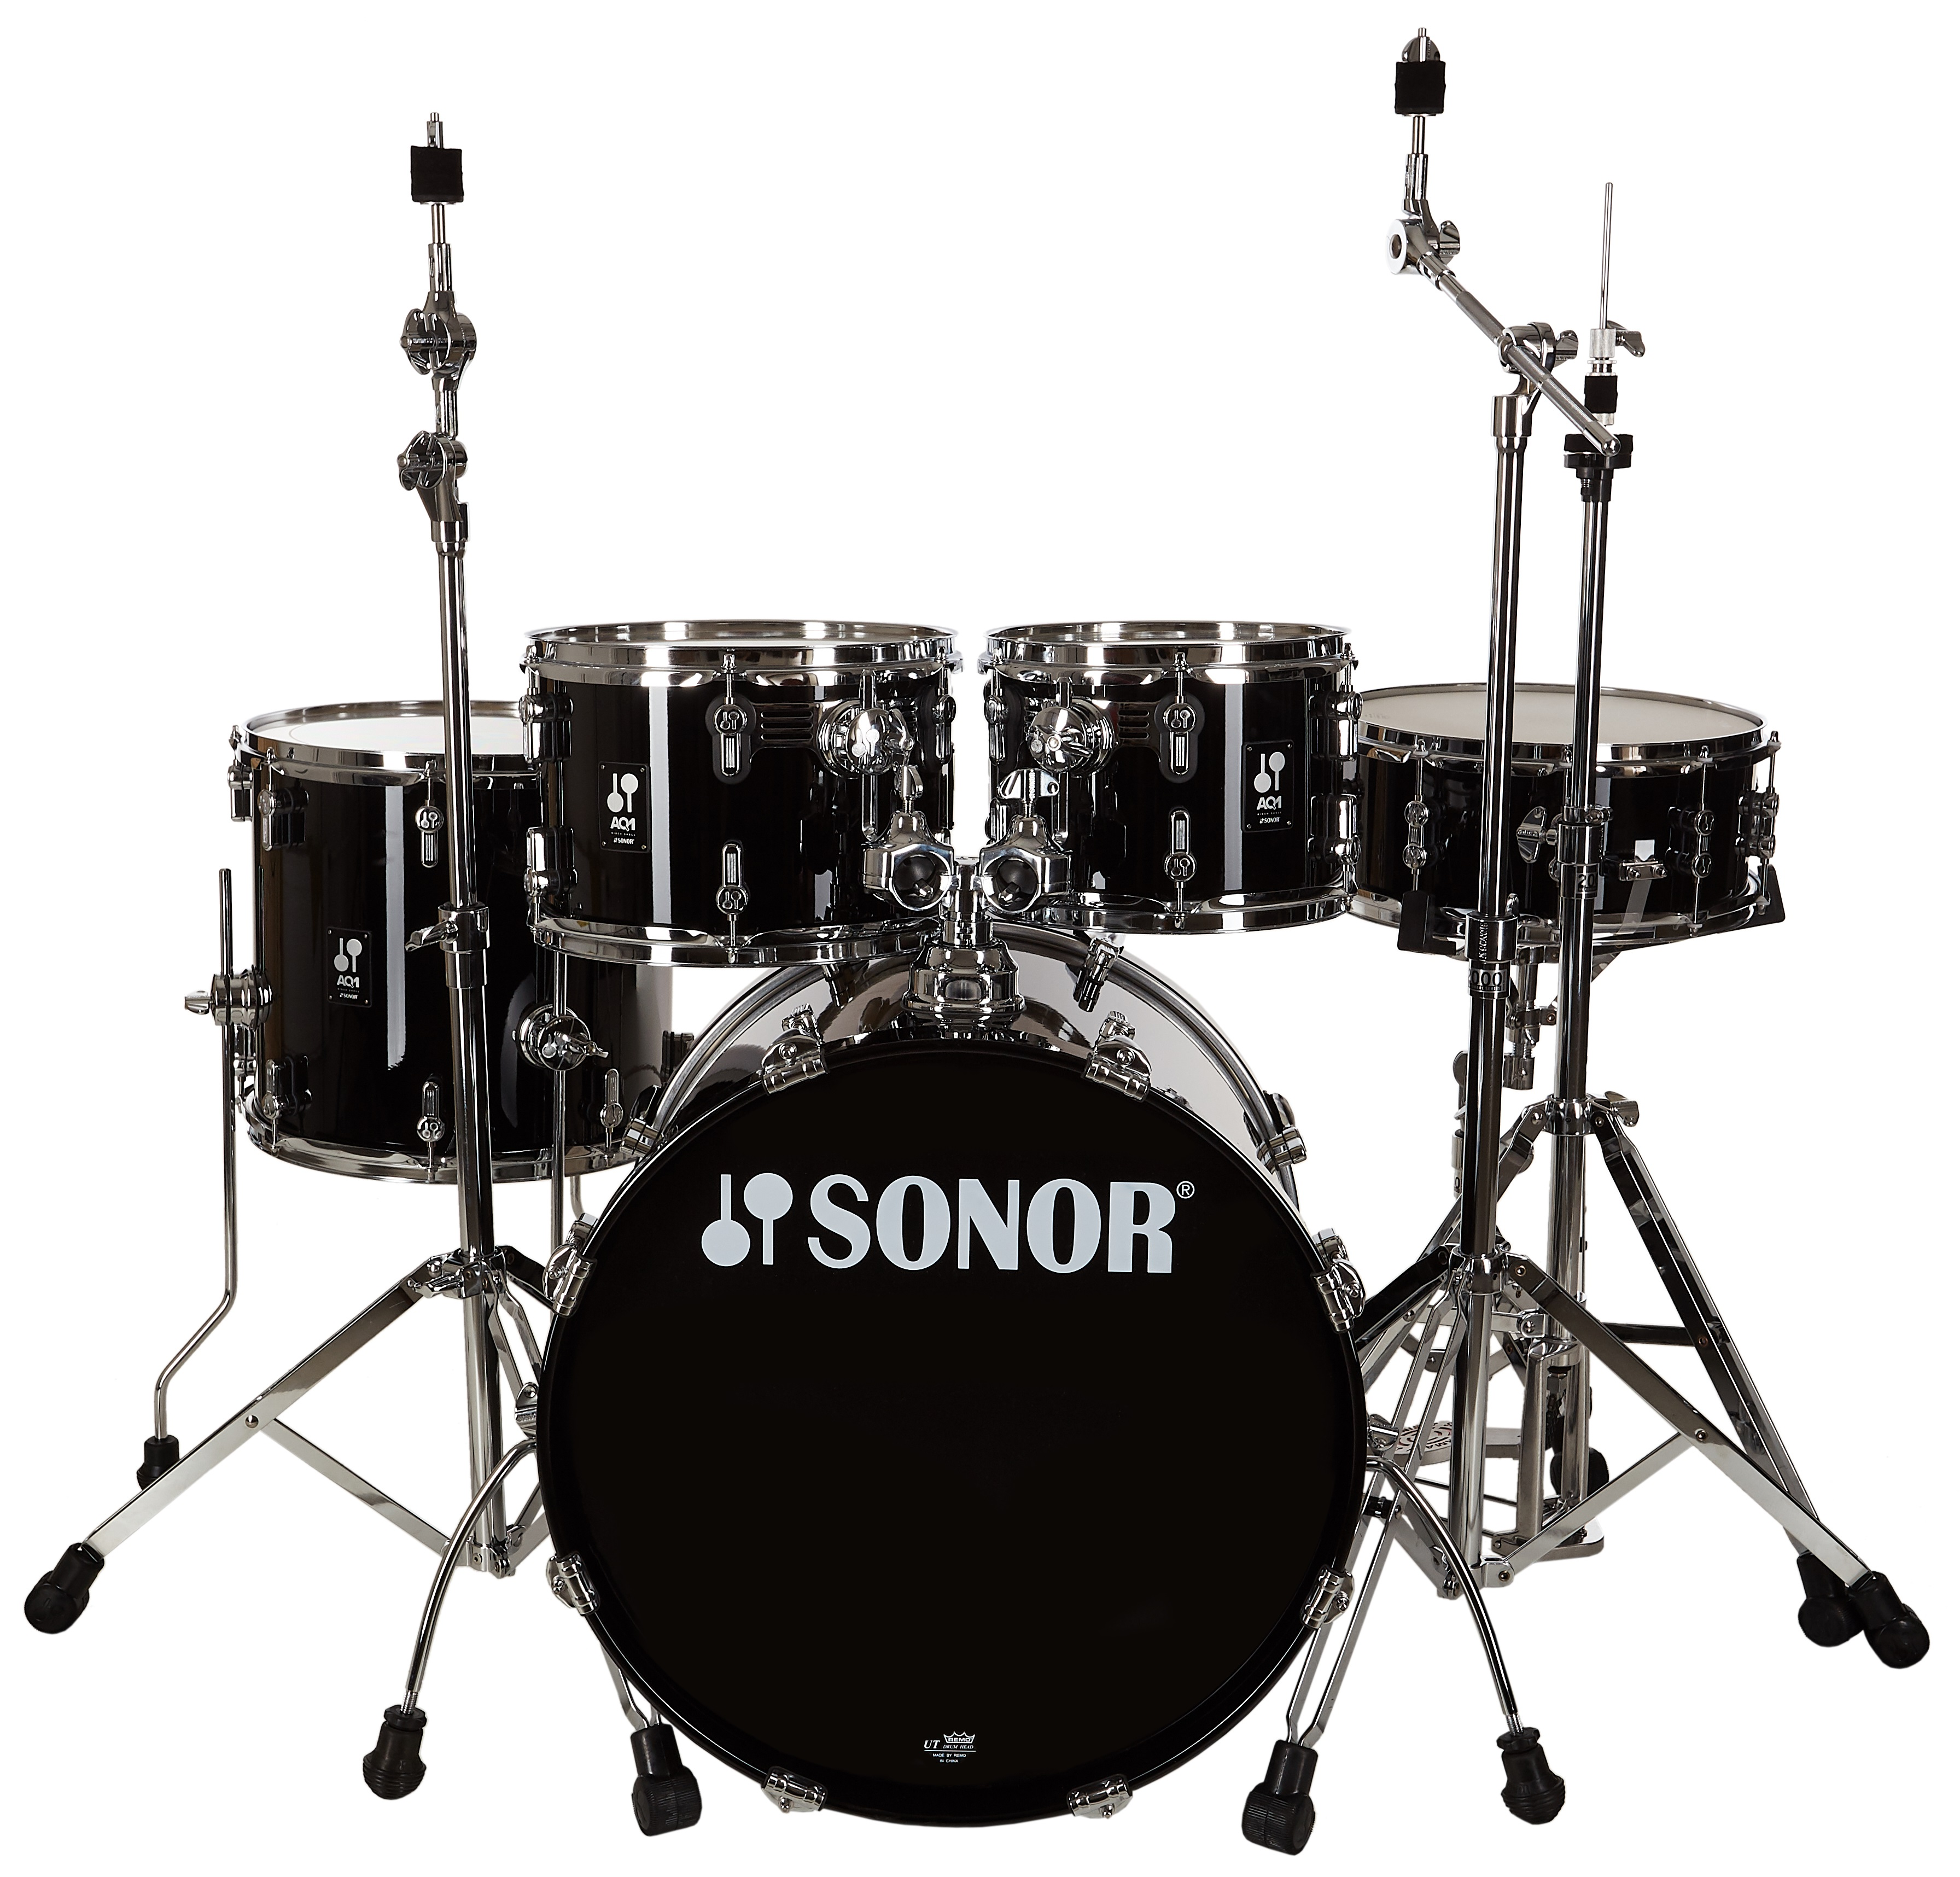 Sonor AQ1 Piano Black Studio Set